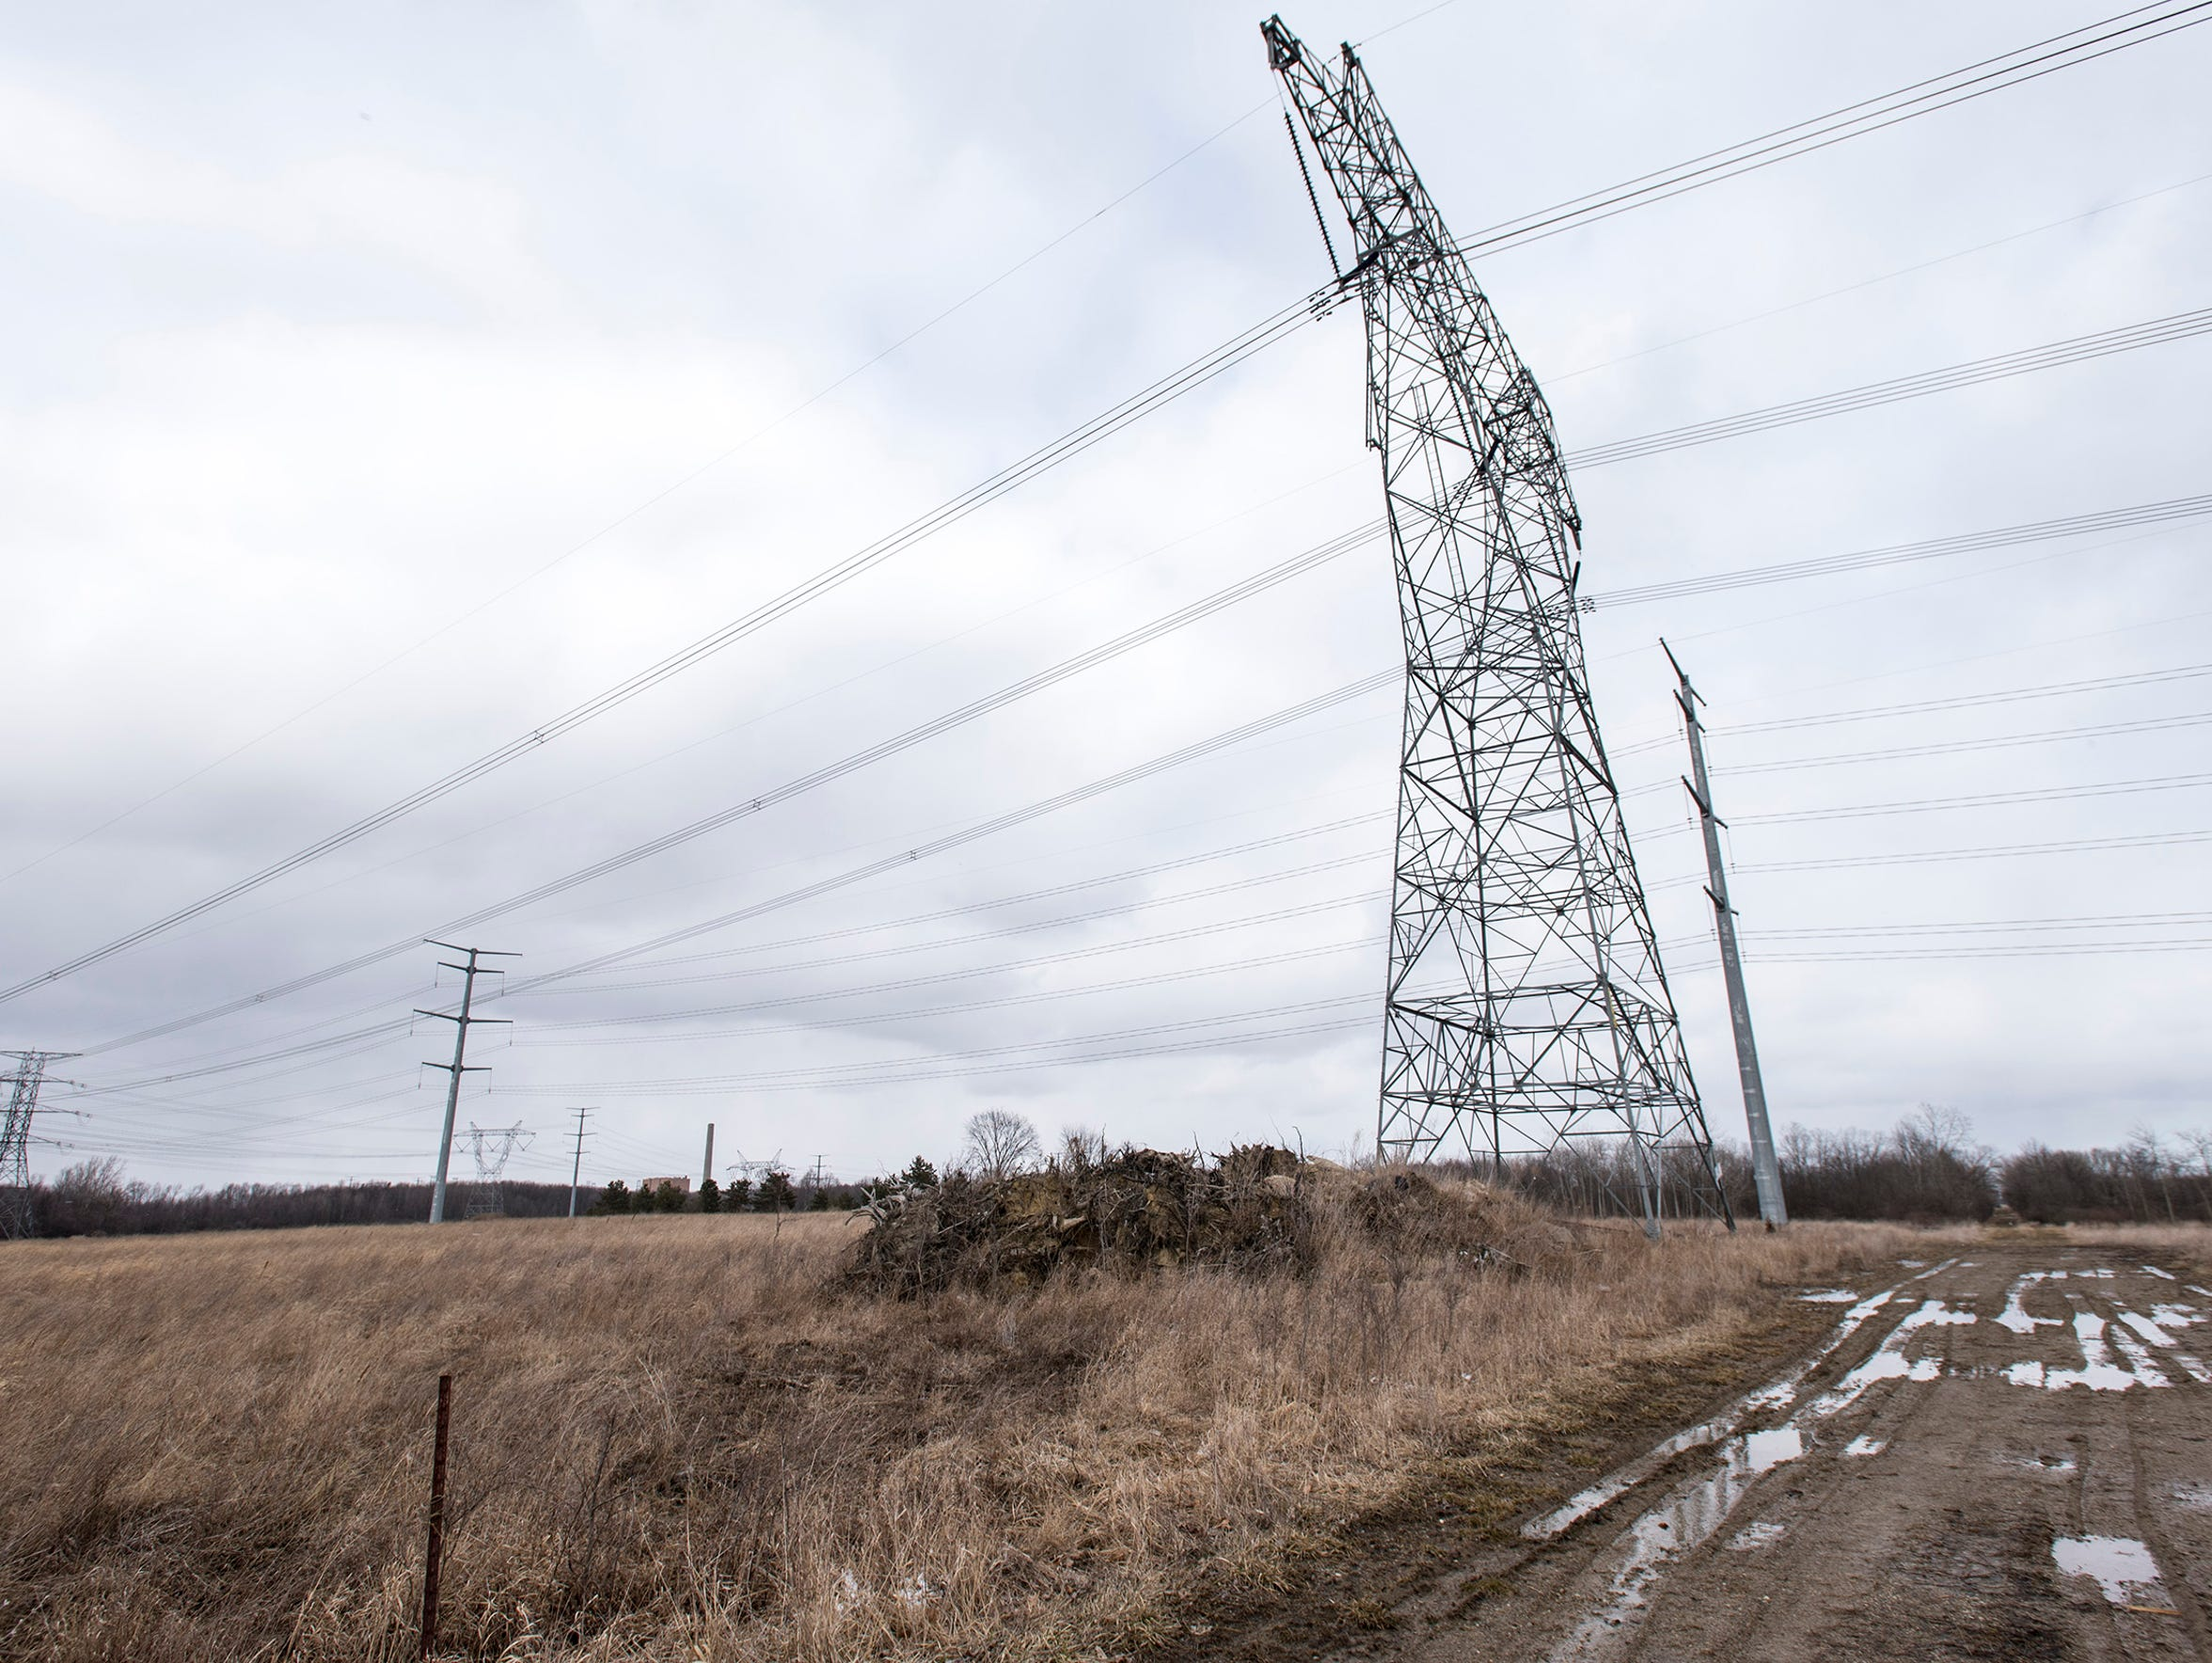 A Minnesota-based energy company is proposing a 20-megawatt